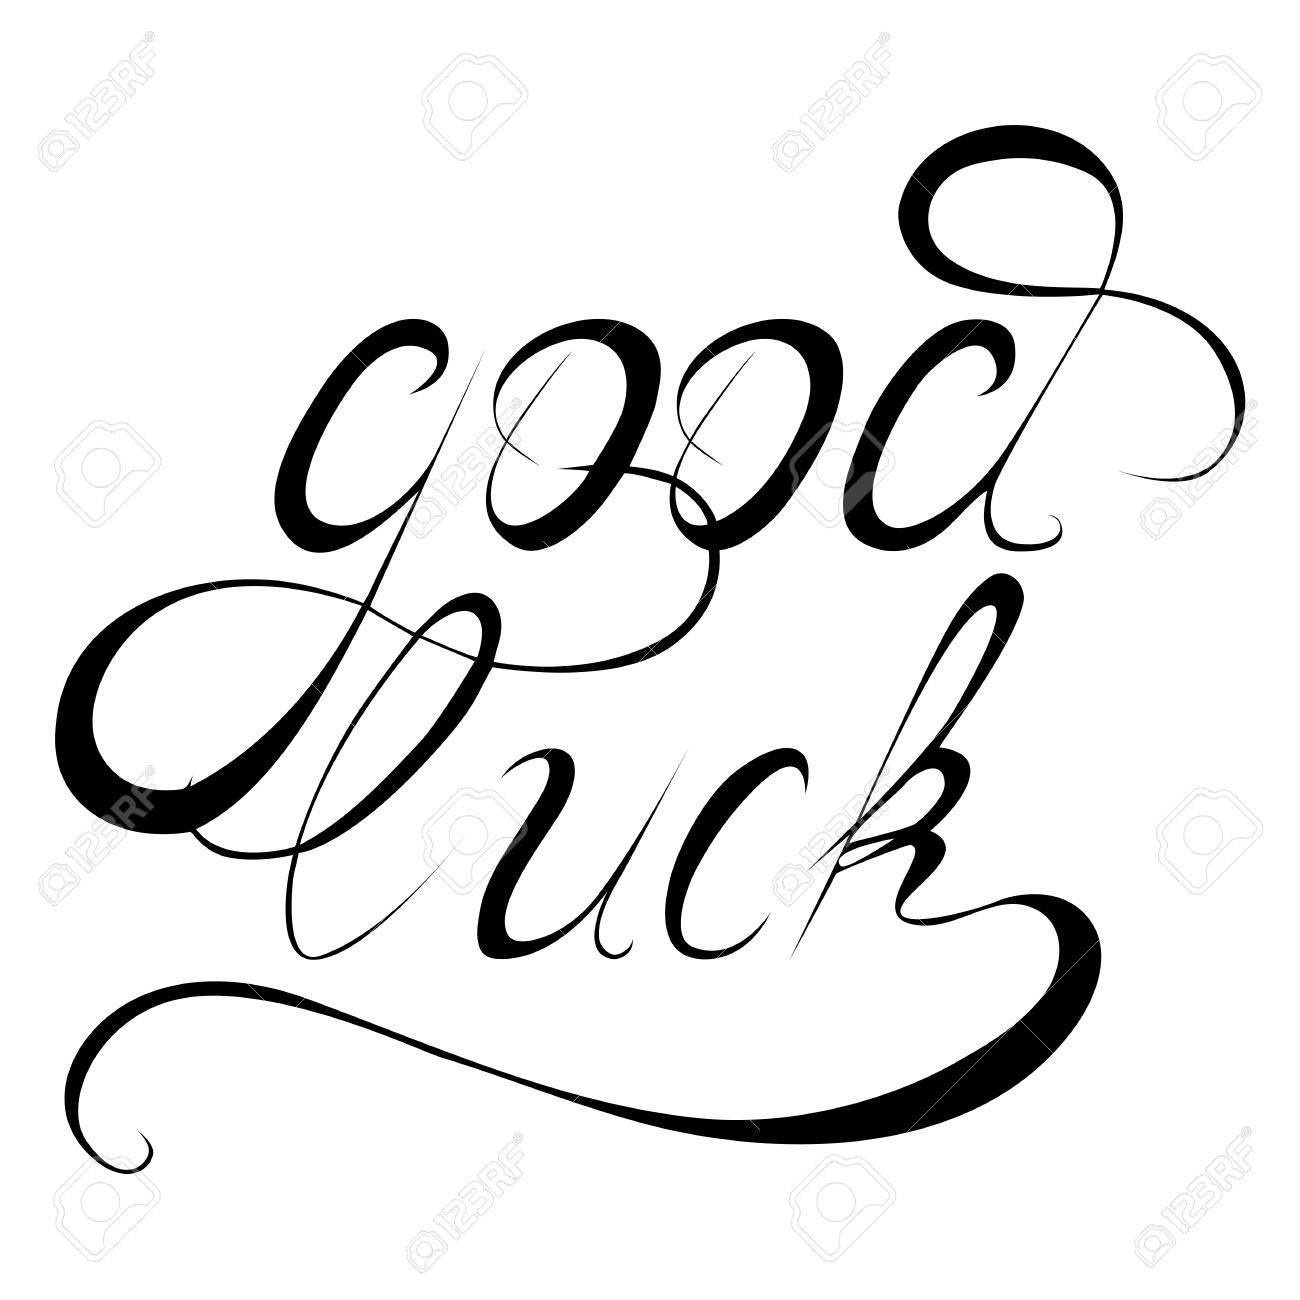 wishing good luck written hand drawn calligraphy vector design rh 123rf com calligraphy vector design calligraphy vector fonts